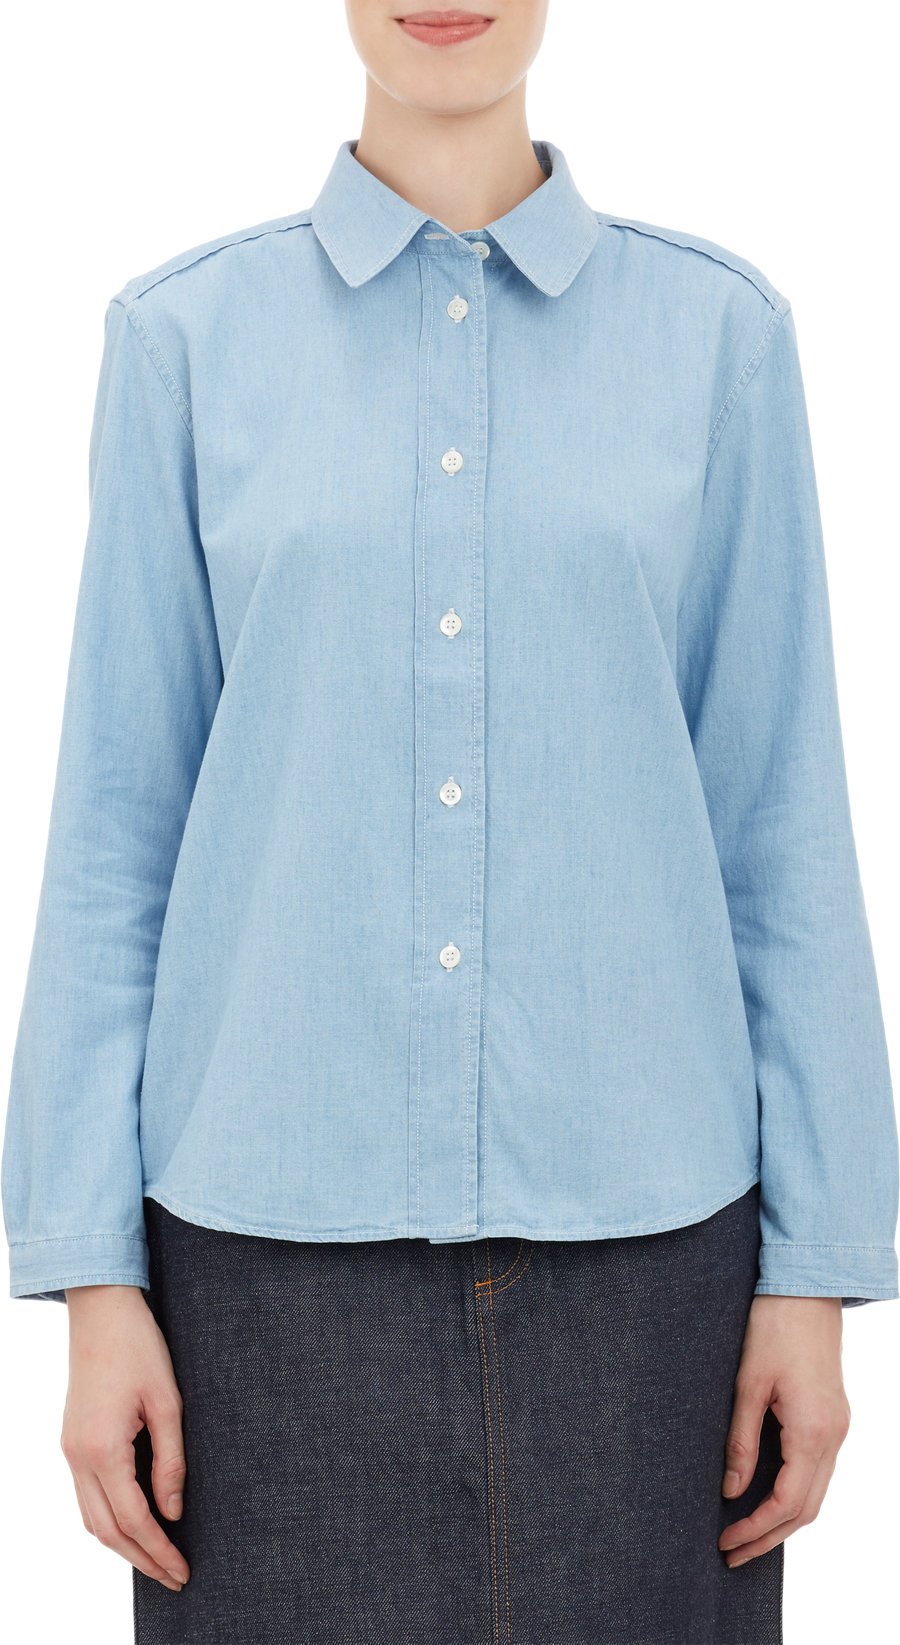 Lyst a p c chambray shirt in blue for Blue chambray shirt women s